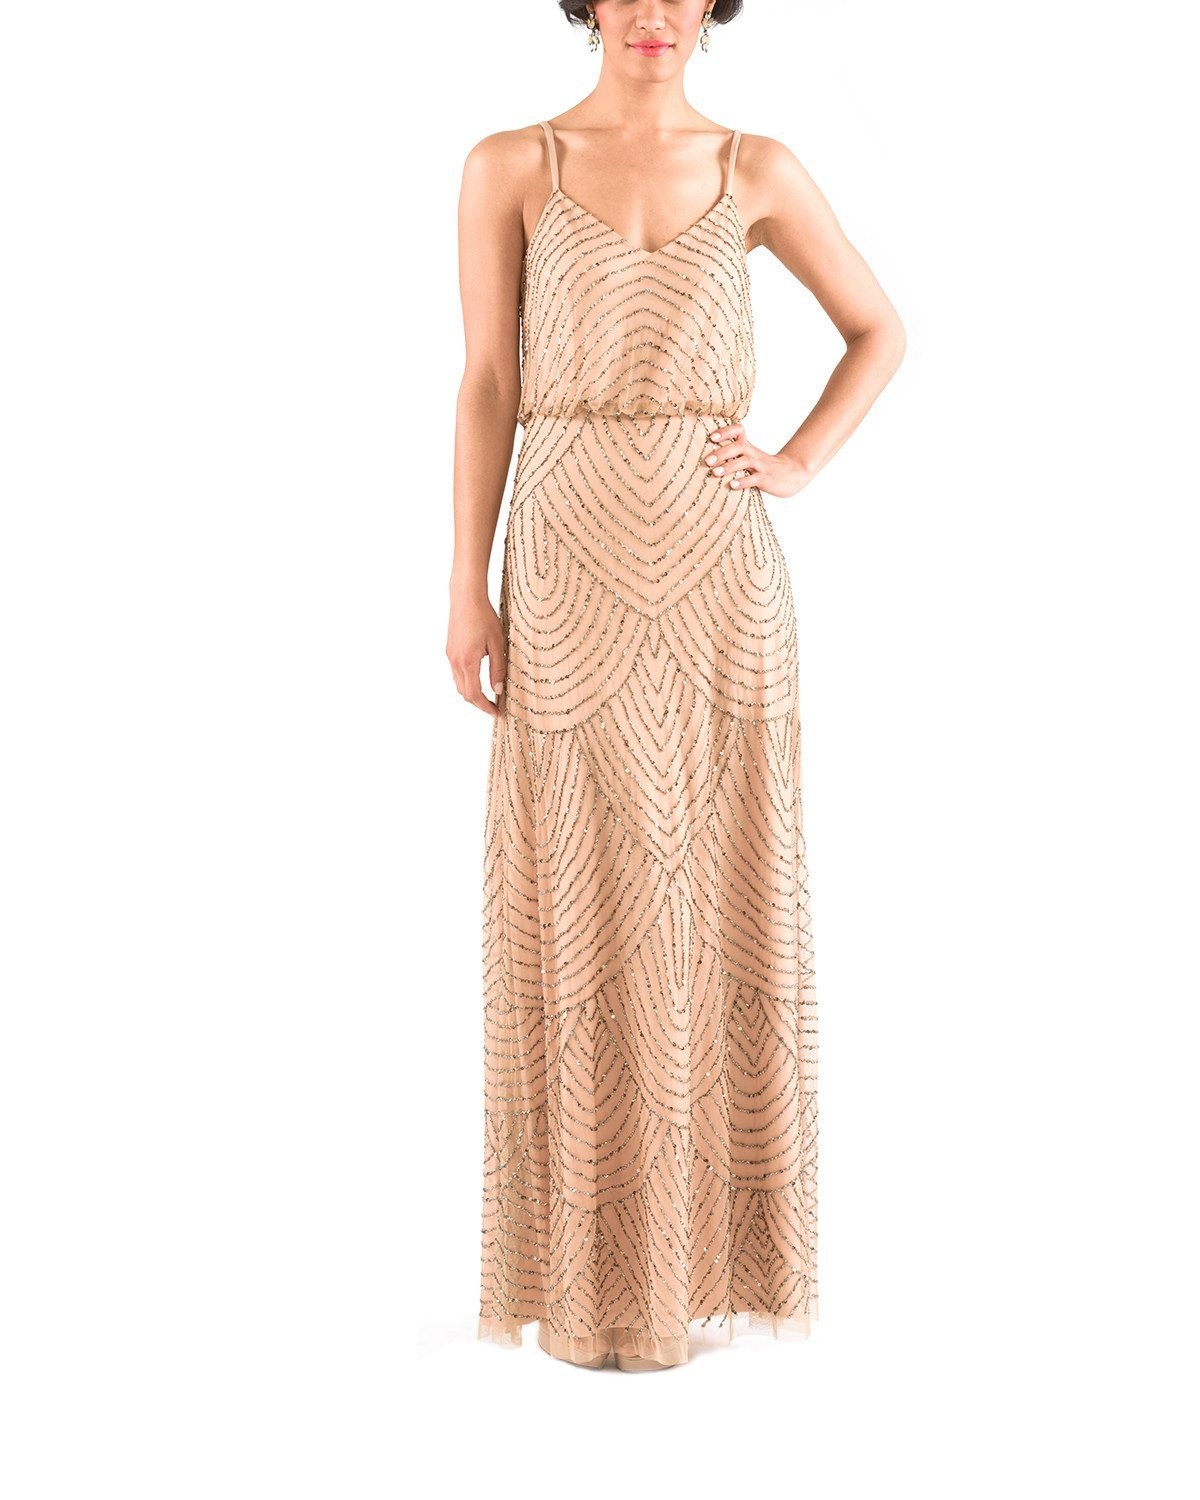 Adrianna Papell Art Deco Blouson Gown in Taupe Pink Bridesmaid Dress ...